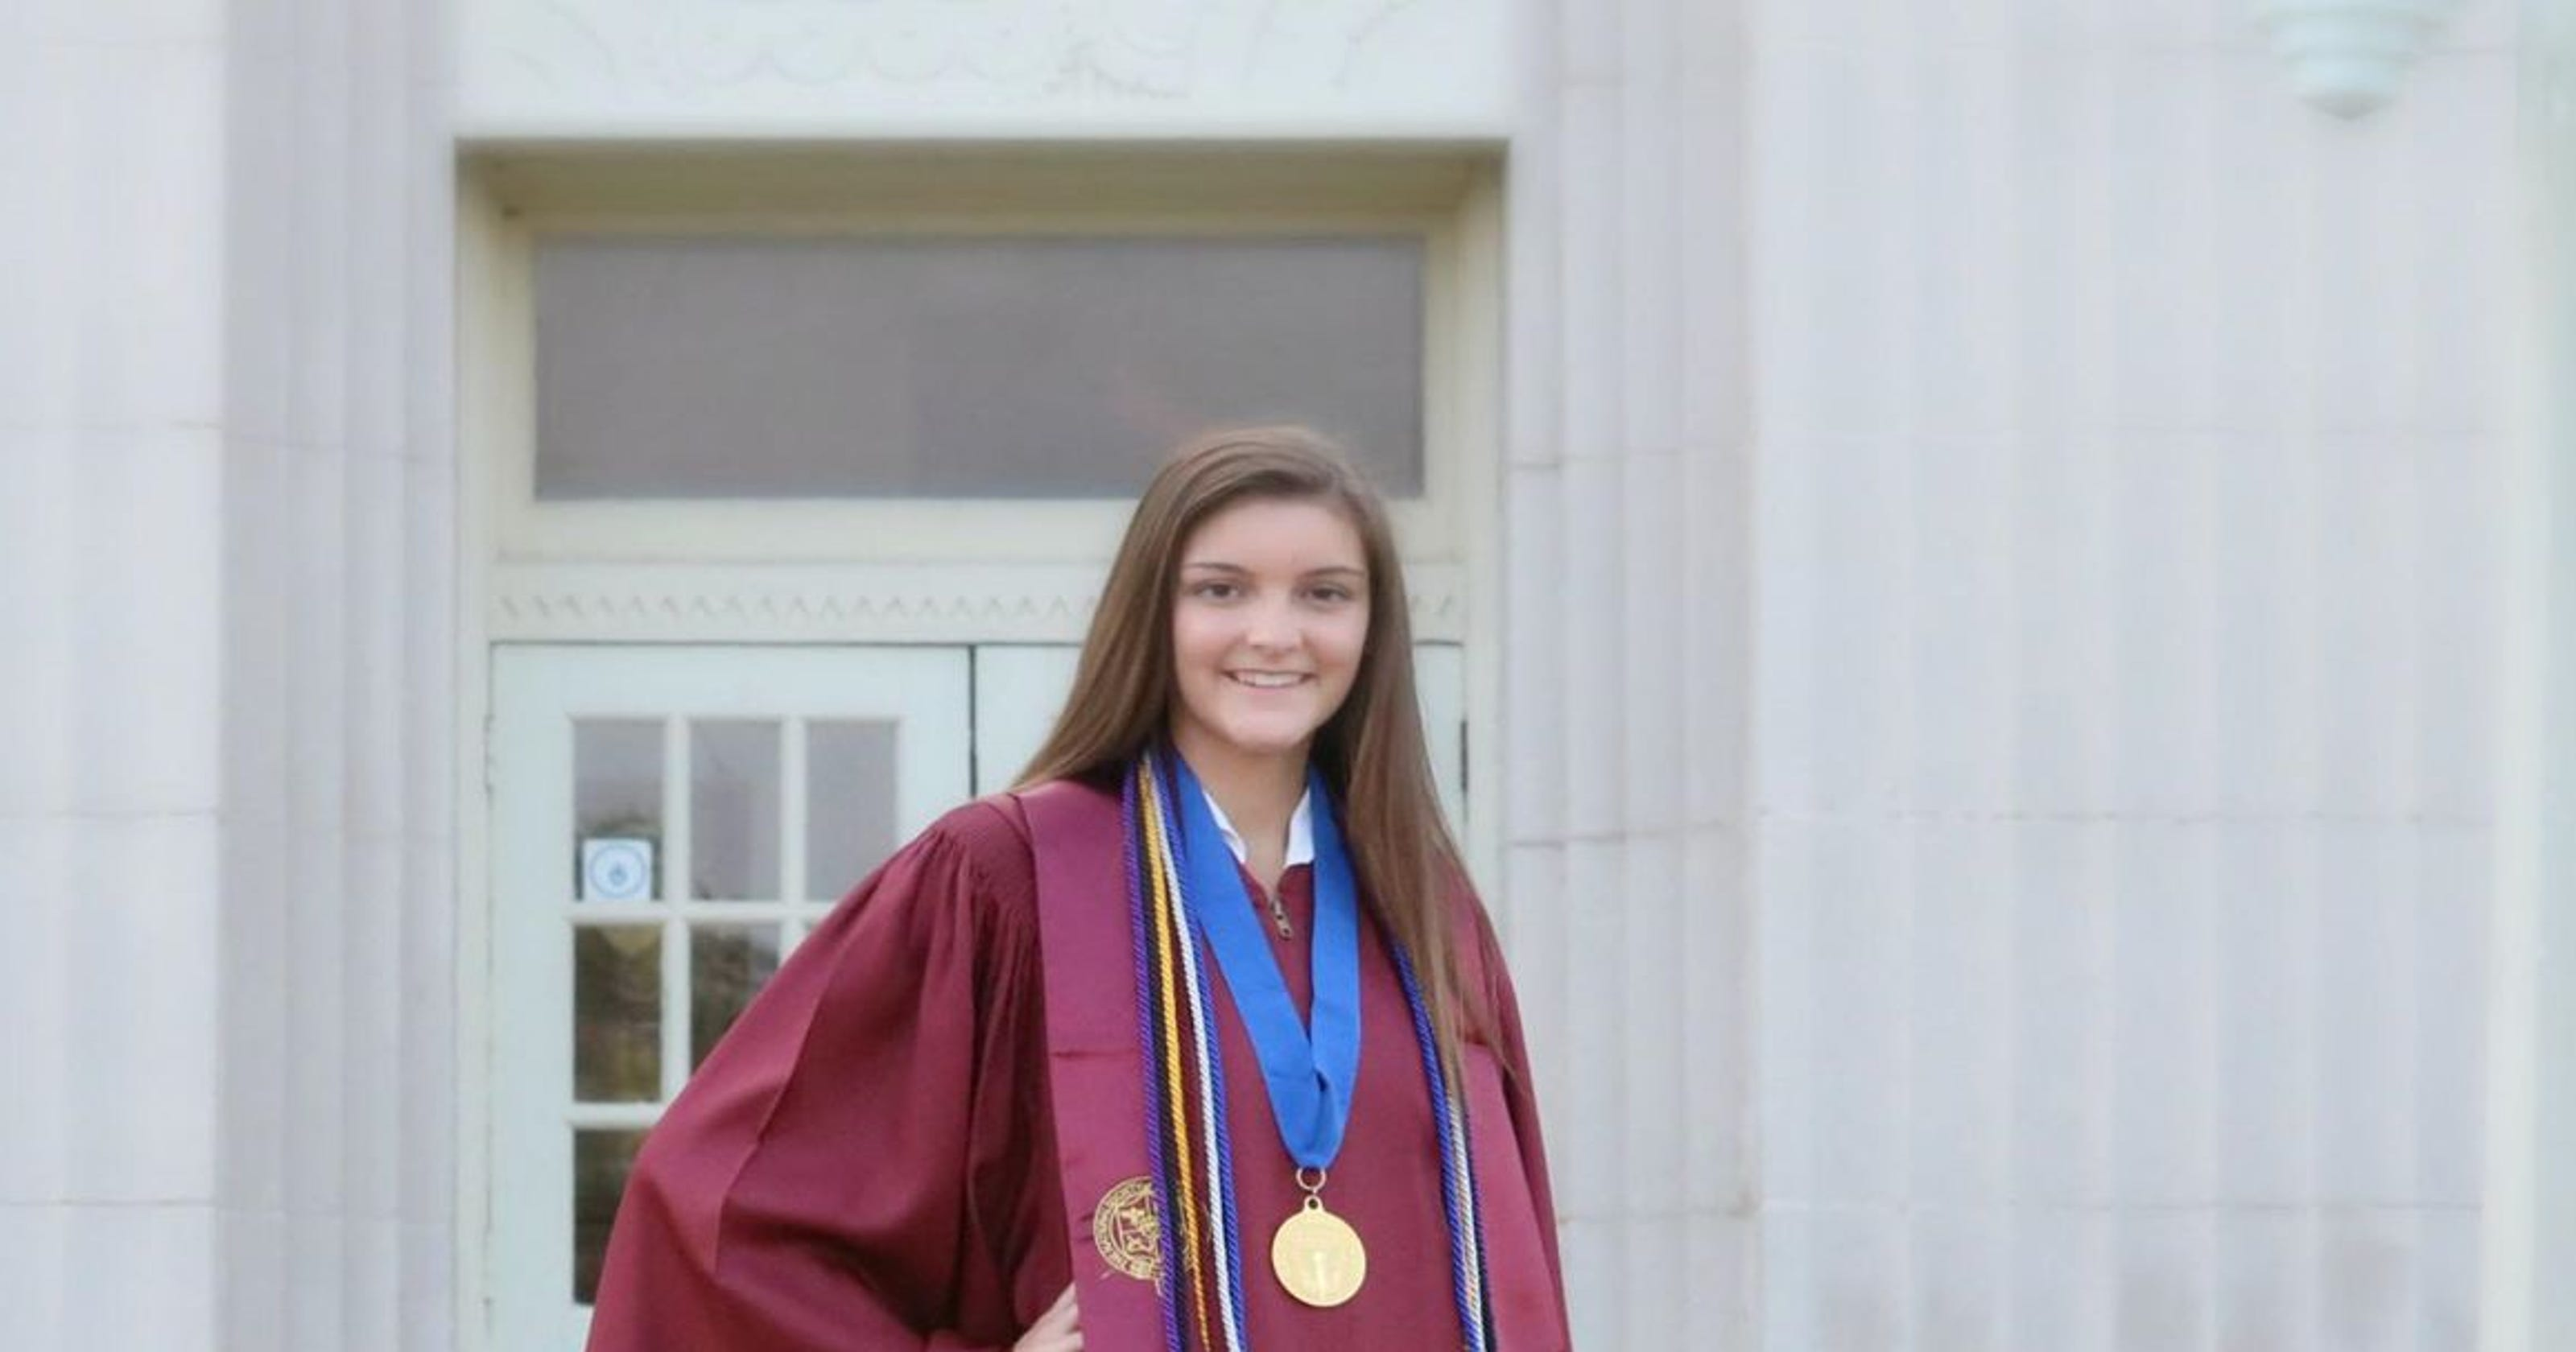 Teen dies in car crash morning after graduating high school